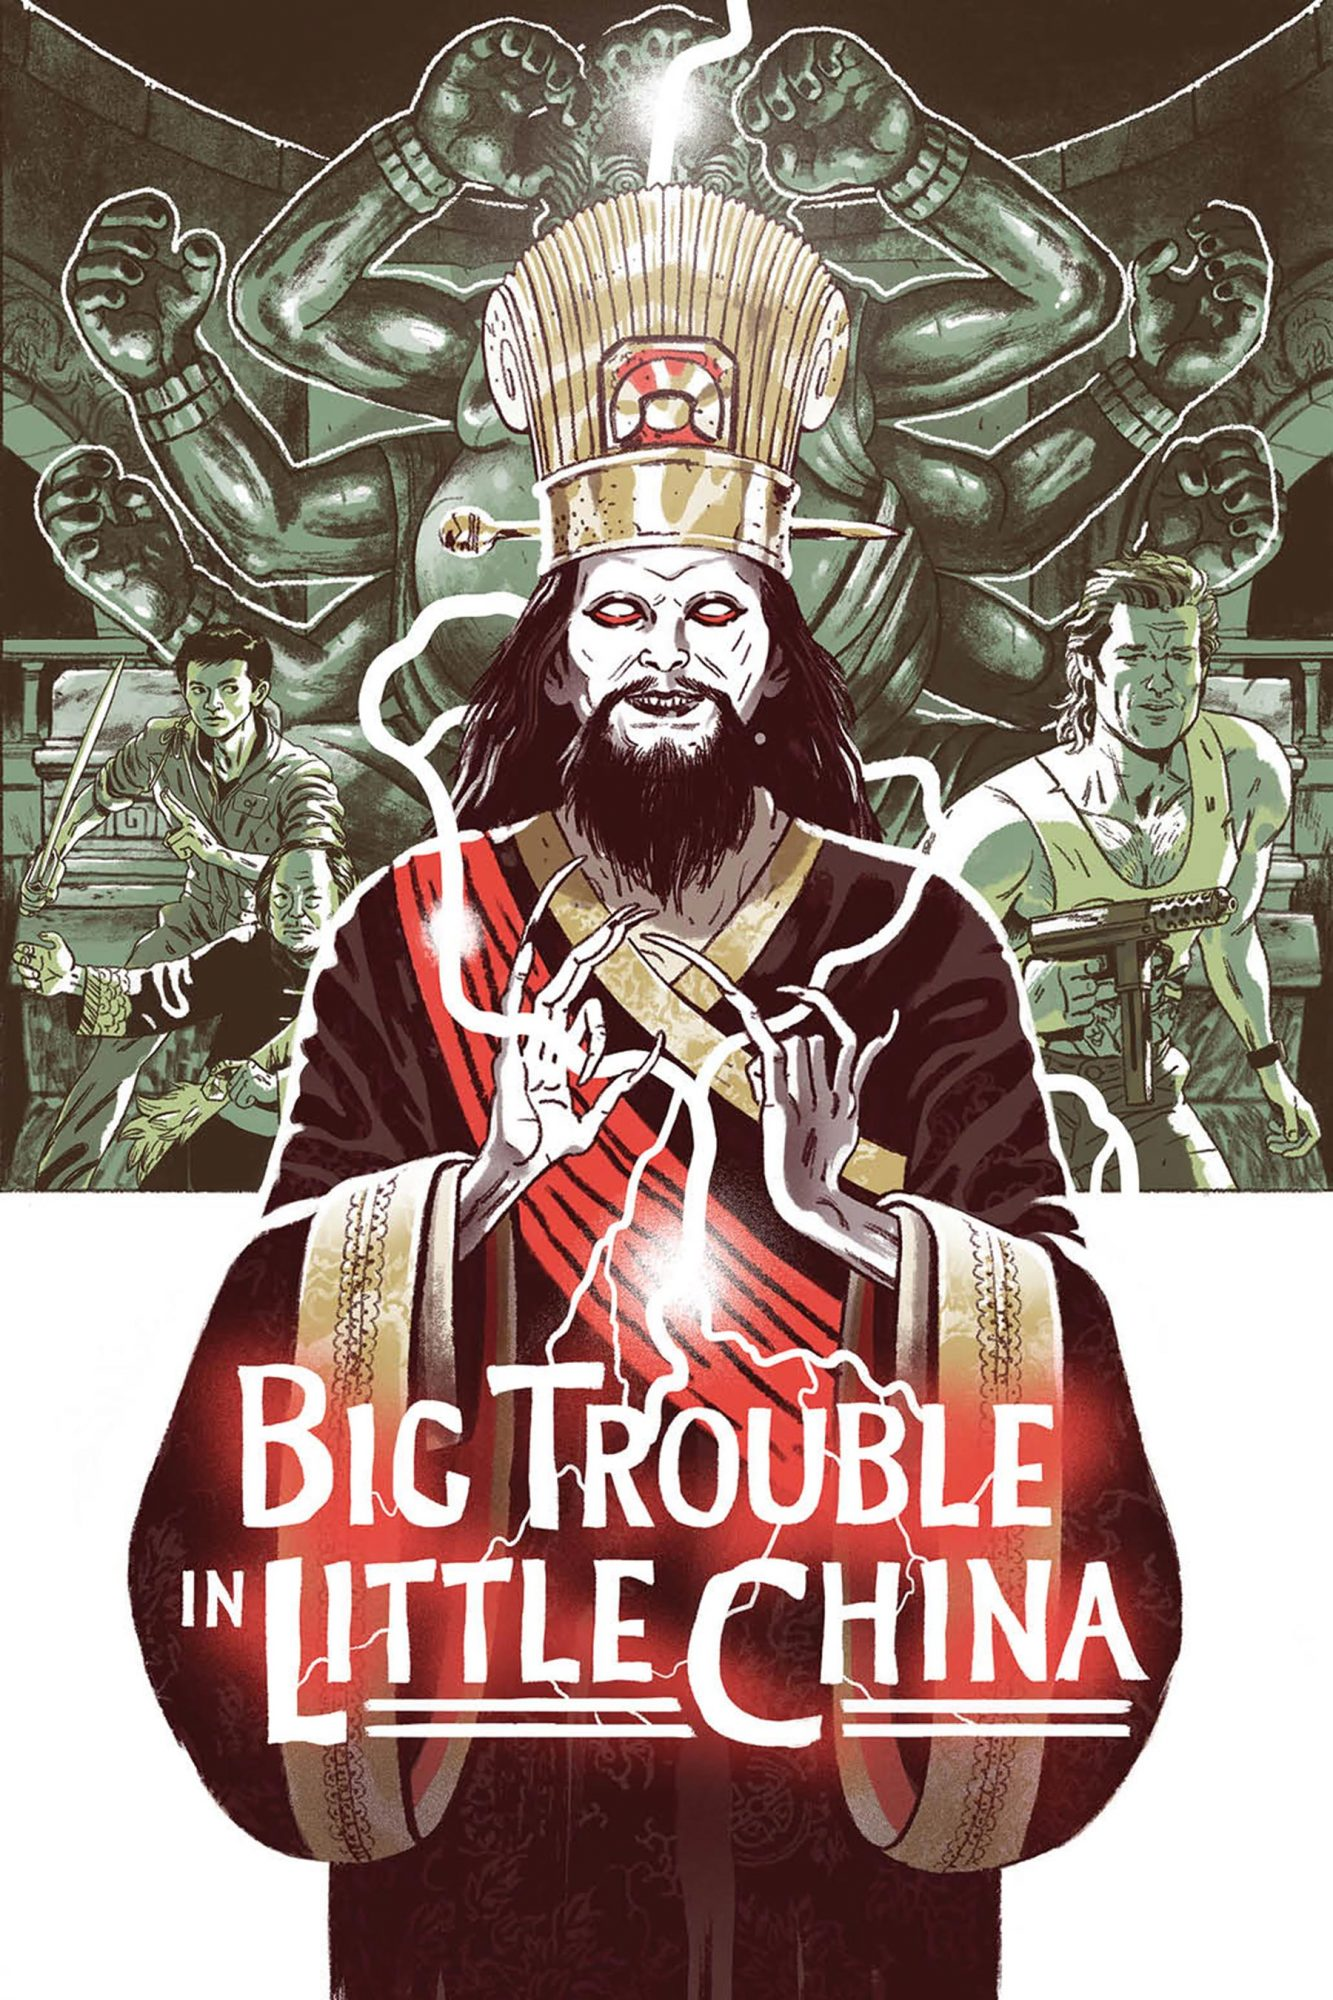 Big Trouble in Little China: Old Man Jack CR: Boom! Studios/20th Century Fox